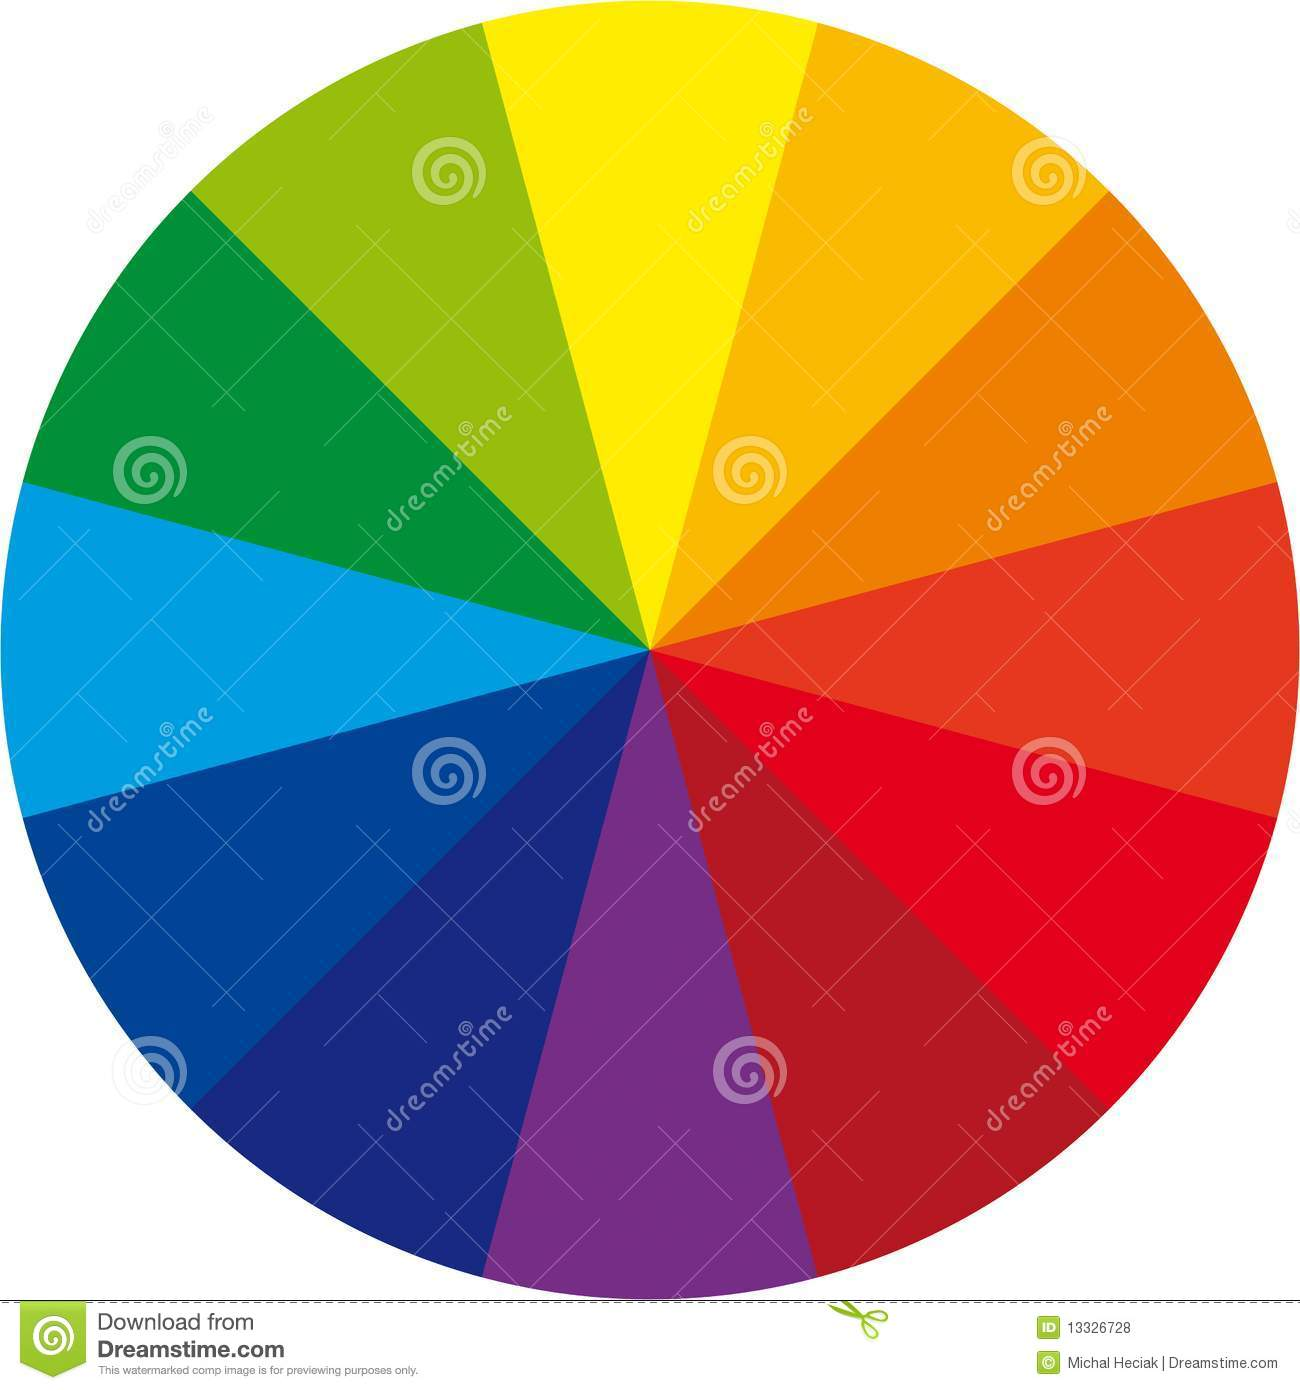 Basic color wheel royalty free stock photos image 13326728 - Rueda de colores ...